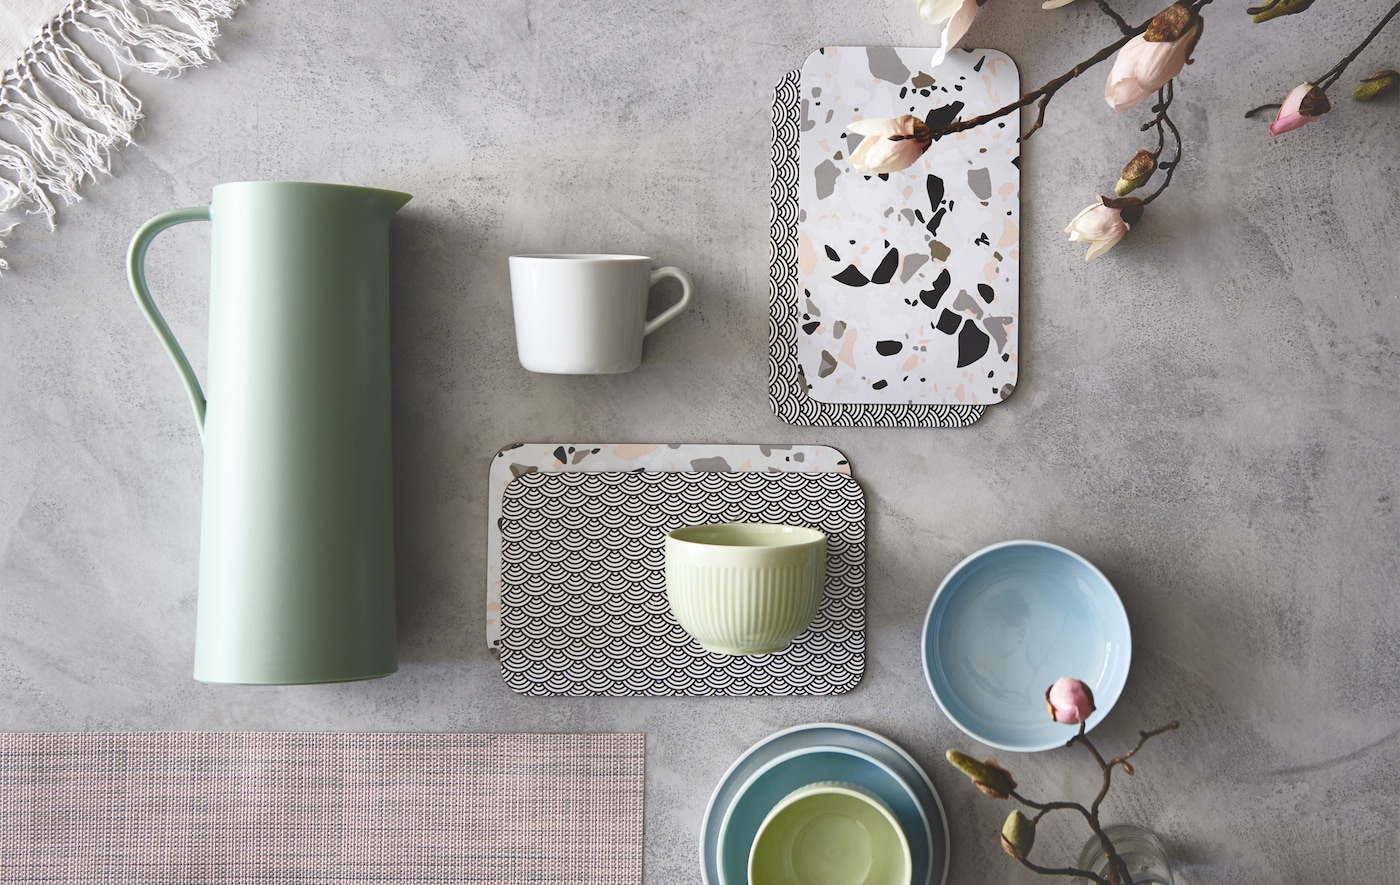 Teacups and trays in pastel colours laid out on concrete.